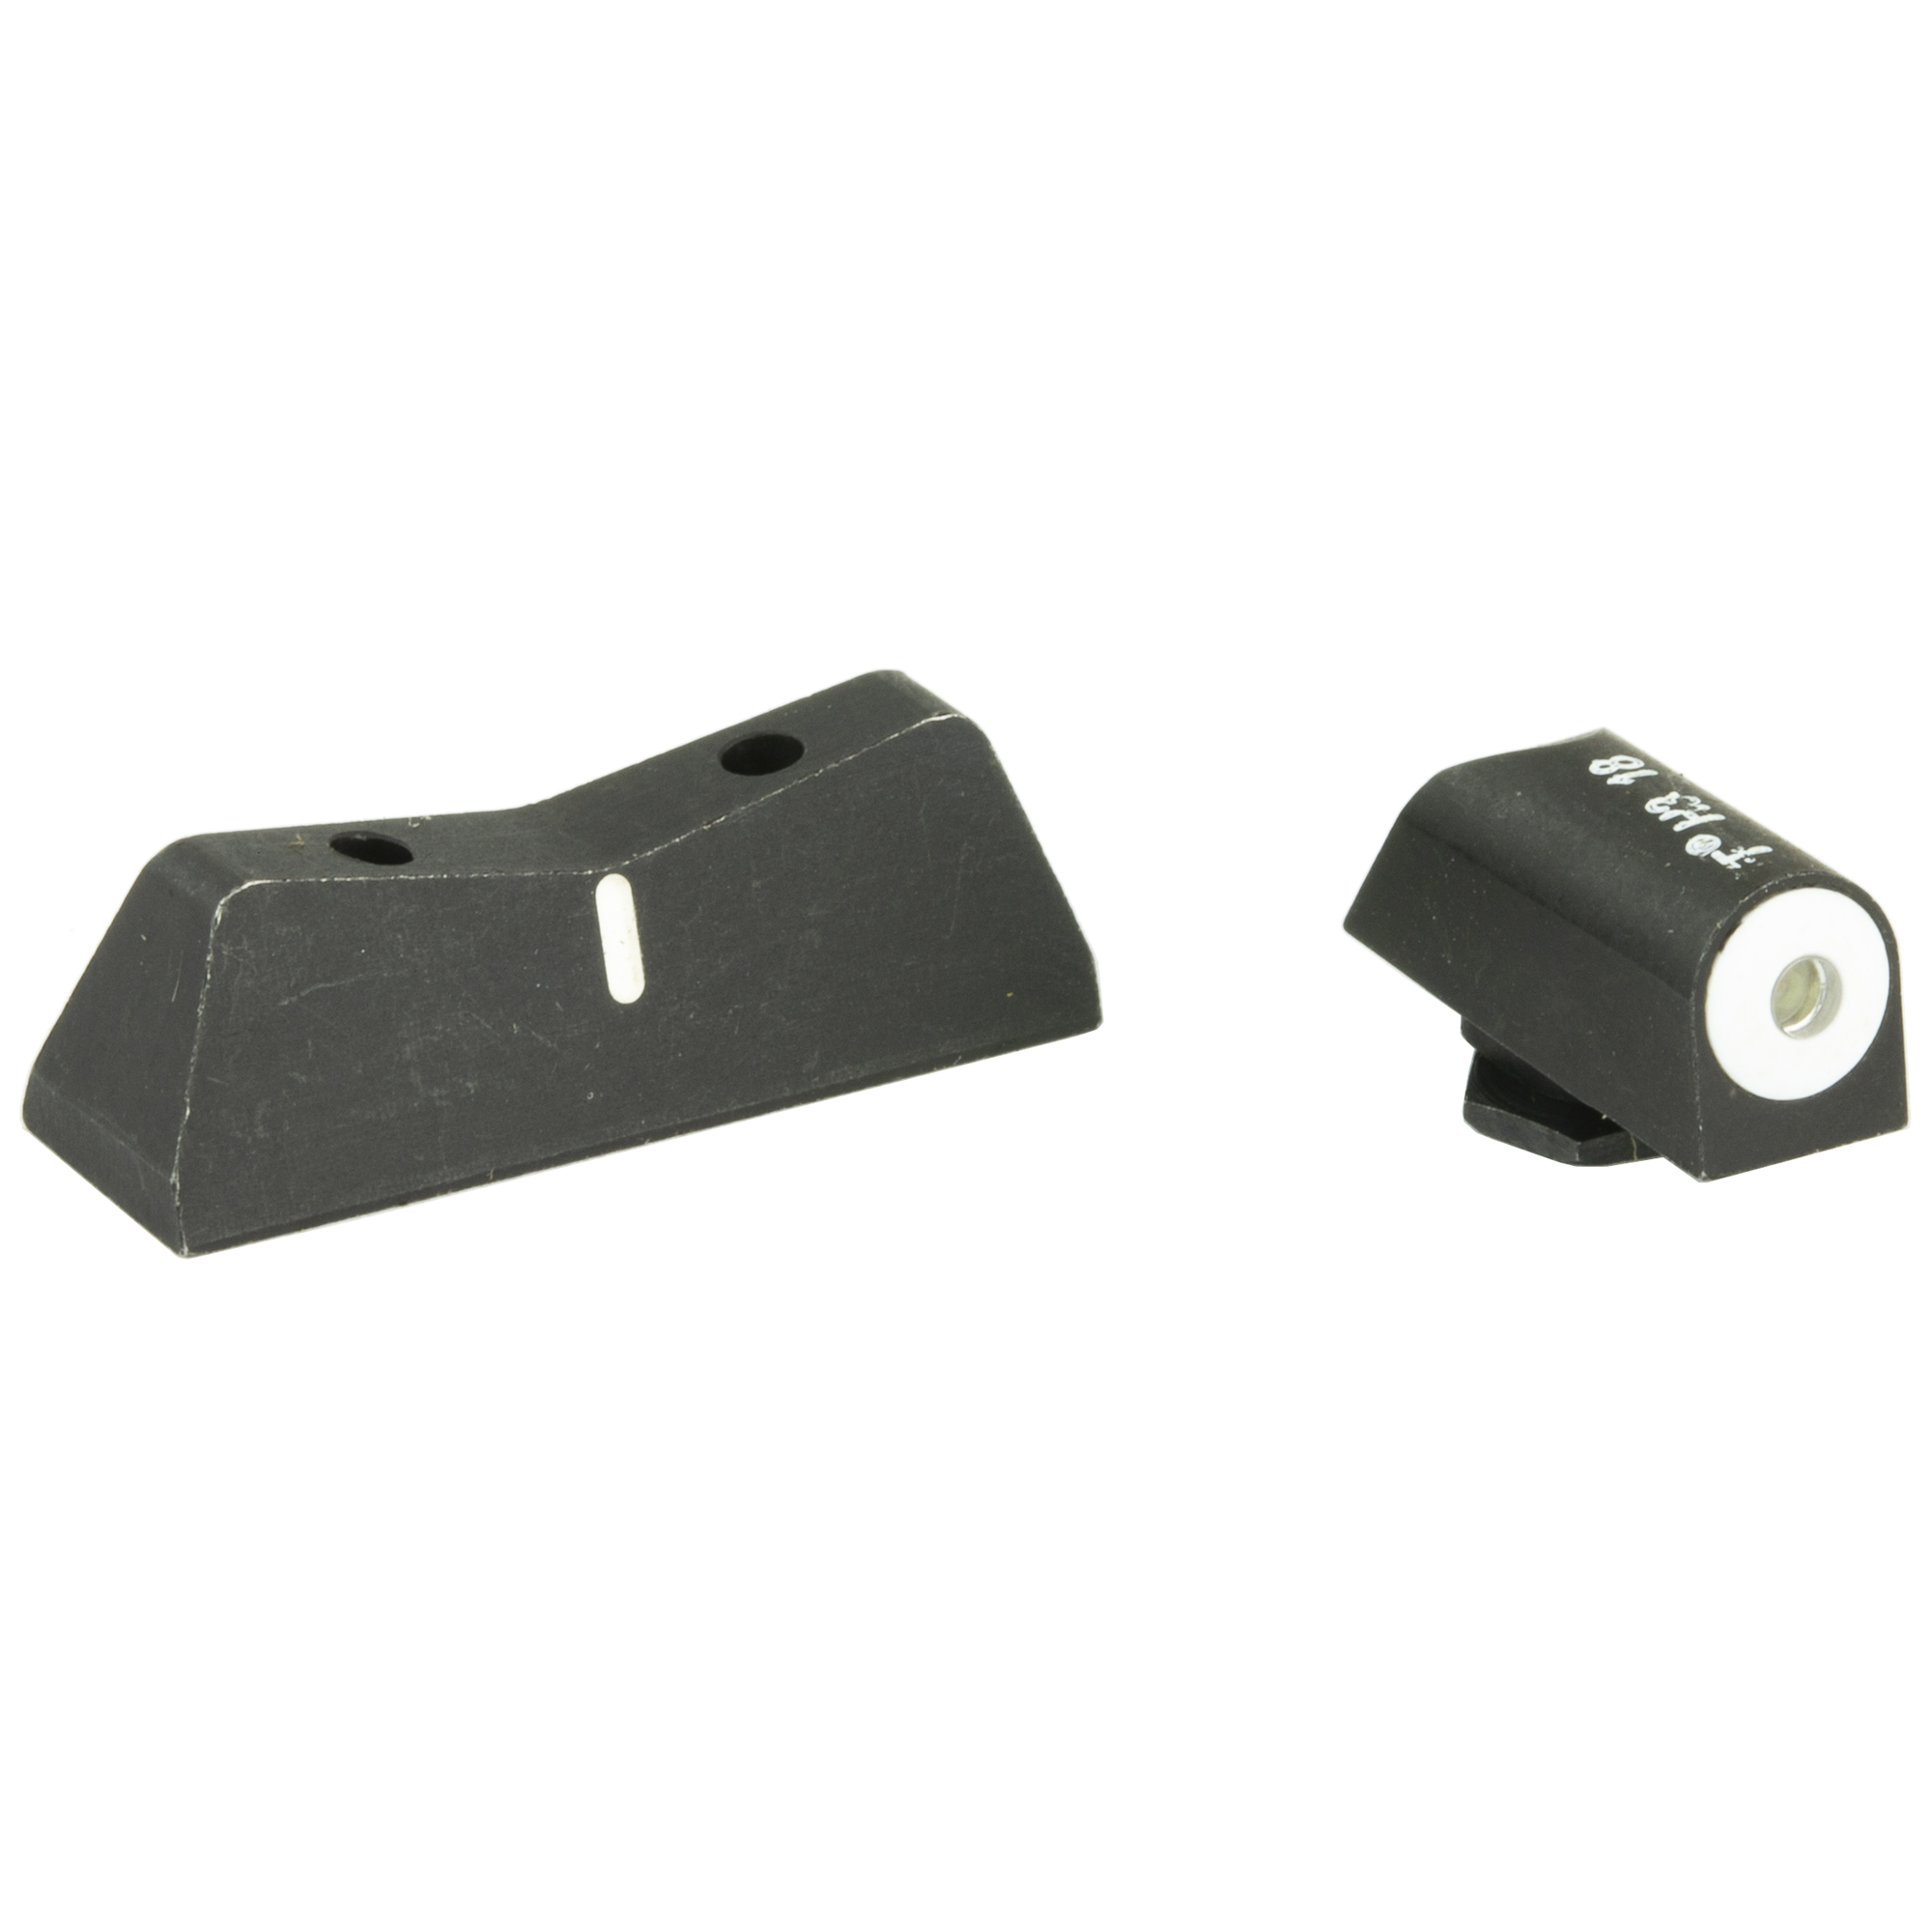 "The XS DXW Big Dot night sight is a superior defensive sight set. Fits Glock models 20"" 21"" 29"" 30"" 30S"" 37"" 40"" & 41. Precision machined in Fort Worth"" TX"" XS Sights feature a Big Dot Tritium front sight and express rear sight with a white stripe for fast sight acquisition in all light conditions. Big Dot demands your attention - even in high stress and for those with poor eyesight"" aids in rapidly achieving combat effective hits. White dot reflects ambient light for best visibility in low light. Shallow V-Notch rear provides an unobstructed view of the front sight"" along with a greater field of view down range"" especially when moving and shooting. Day-Light"" Half-Light"" or Low-Light"" just ""dot the i"" and center the dot over your target within 15 yards. Outside Diameter Big Dot 0.188""; fits in common holsters. Installation might require filing to fit sight to dovetail"" do not use a sight press/pusher tool."